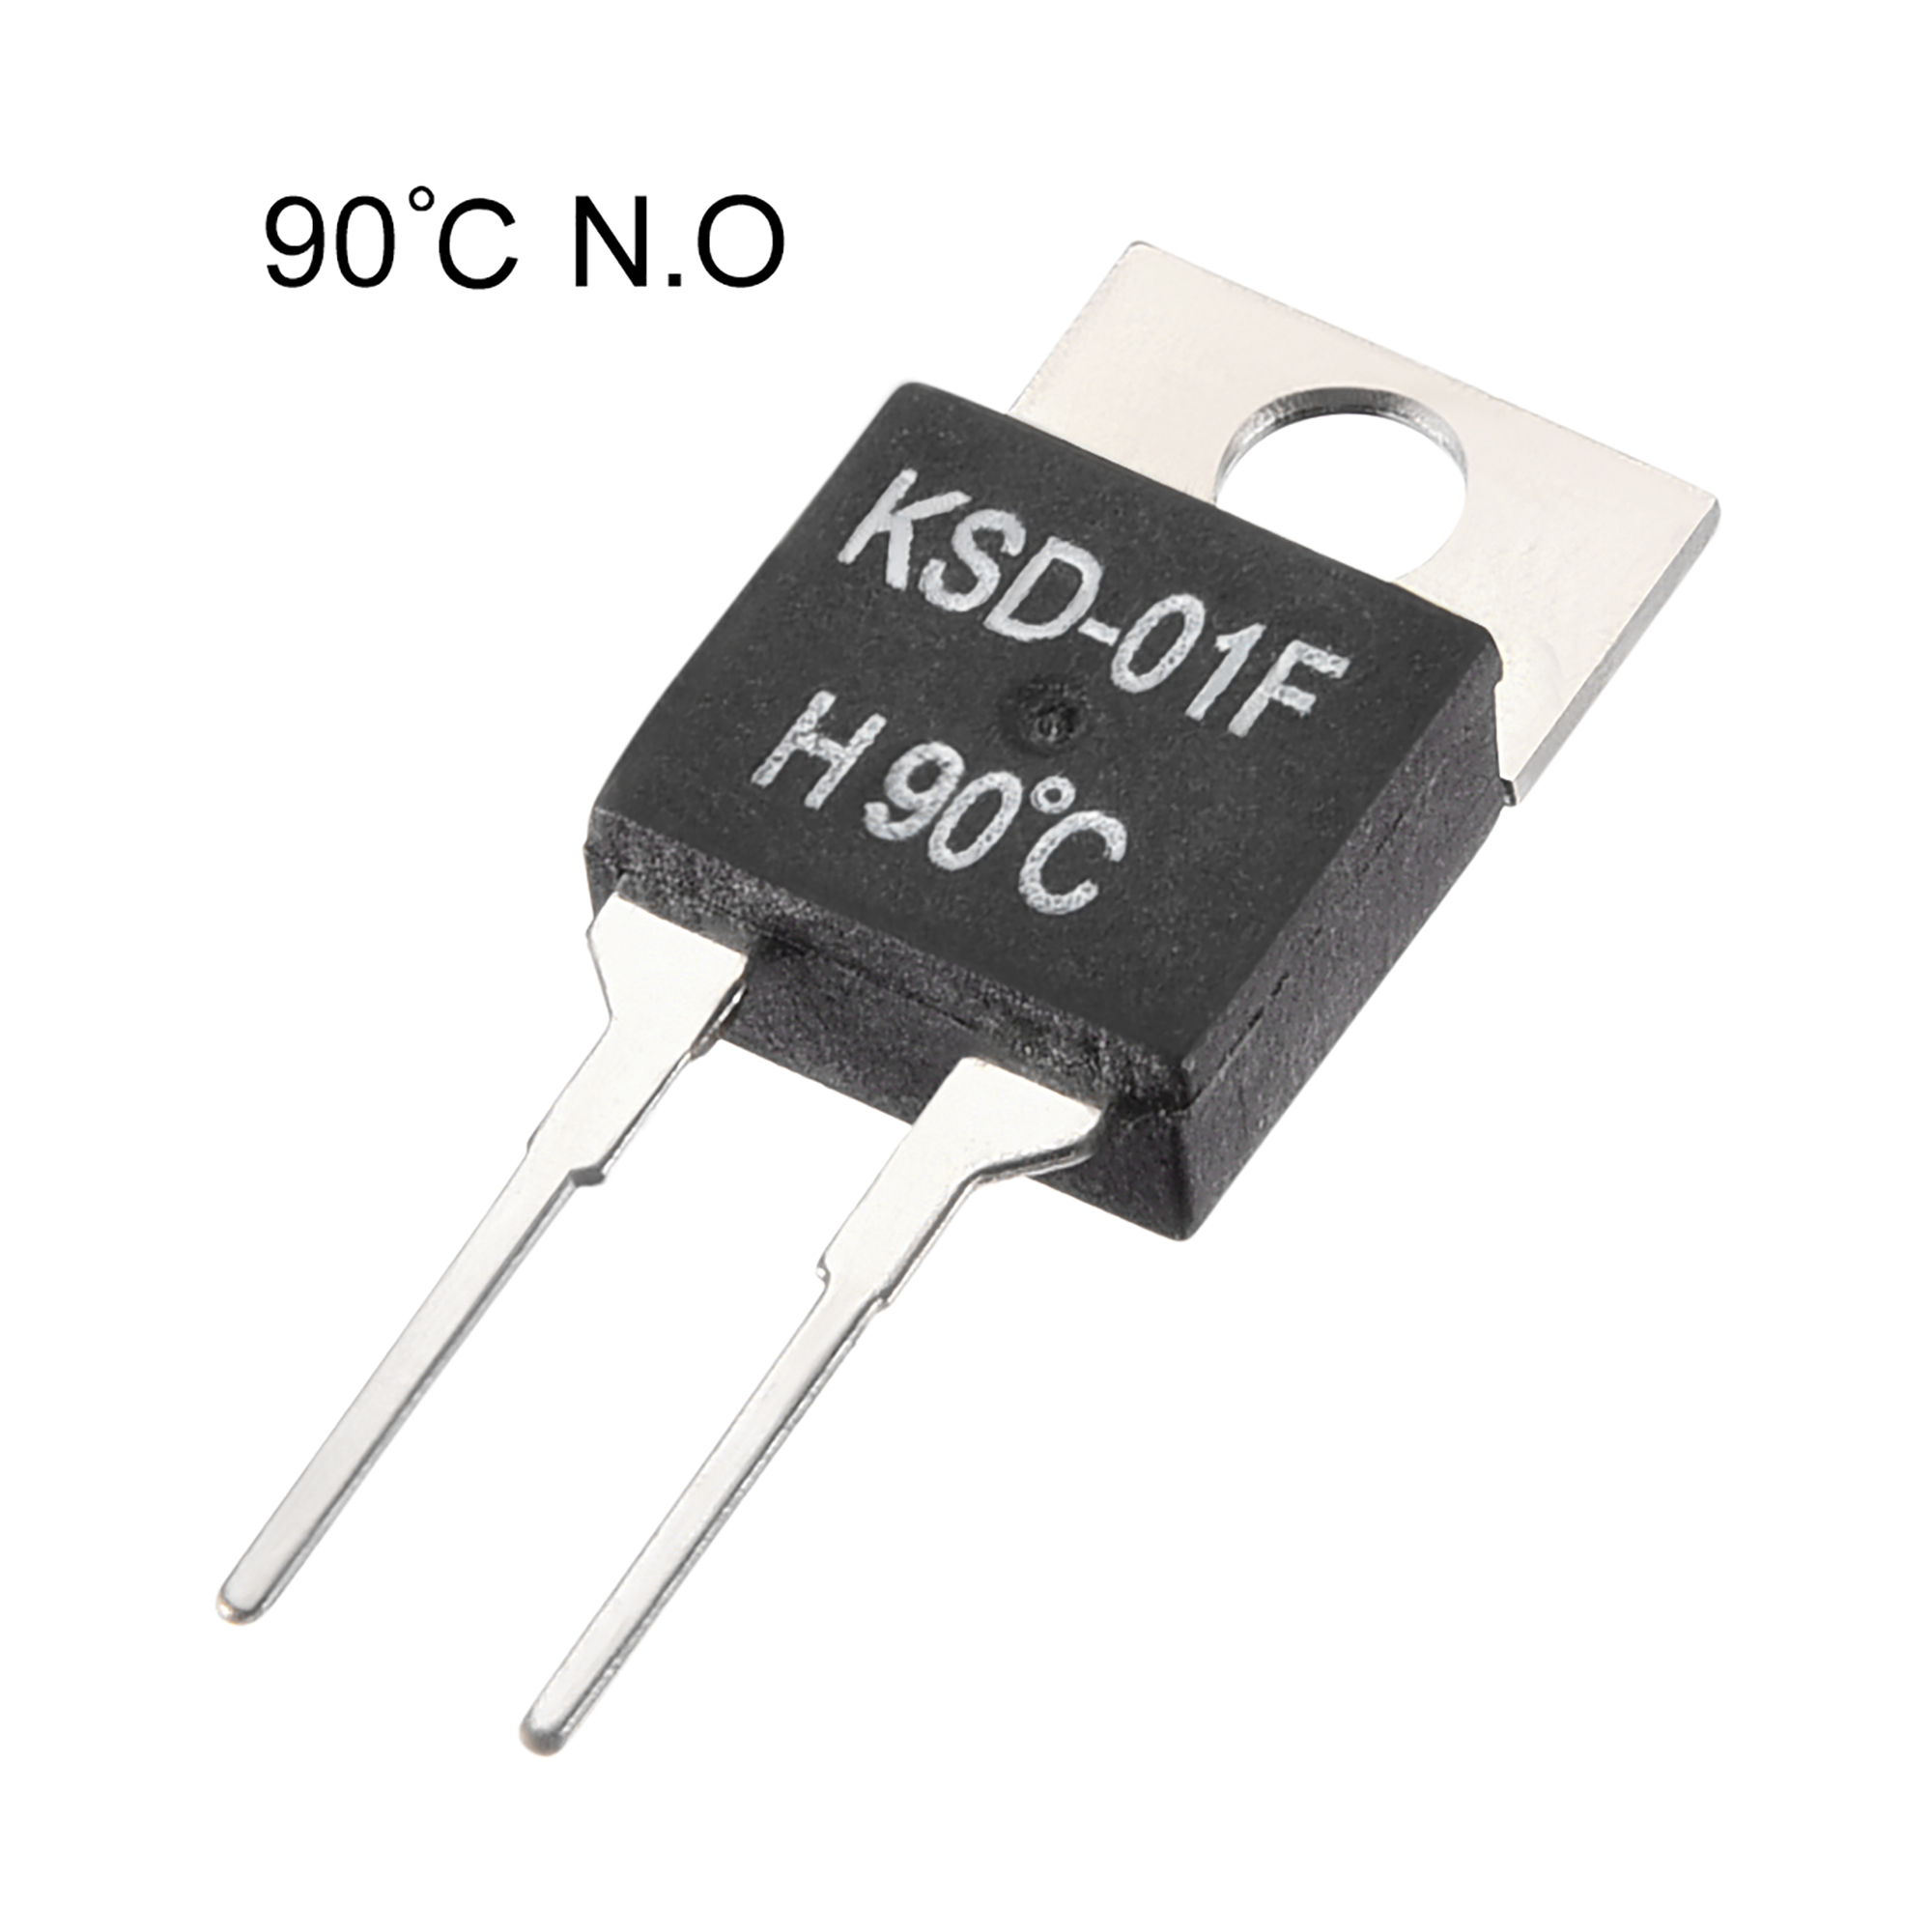 KSD-01F Thermostat, Temperature Controller 90℃ N.O Normal Open 2pcs - image 1 of 3